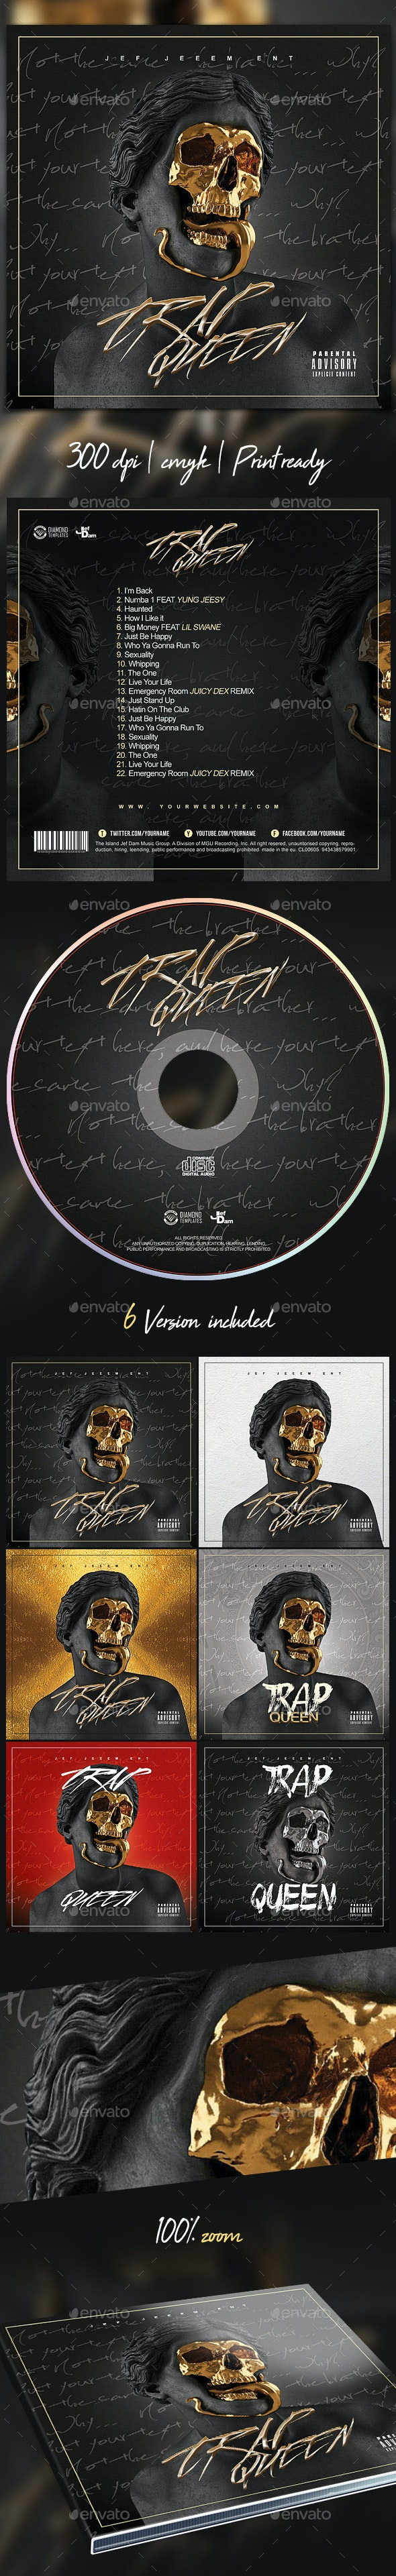 Trap CD Mixtape Rap Album Cover Template - Print Templates